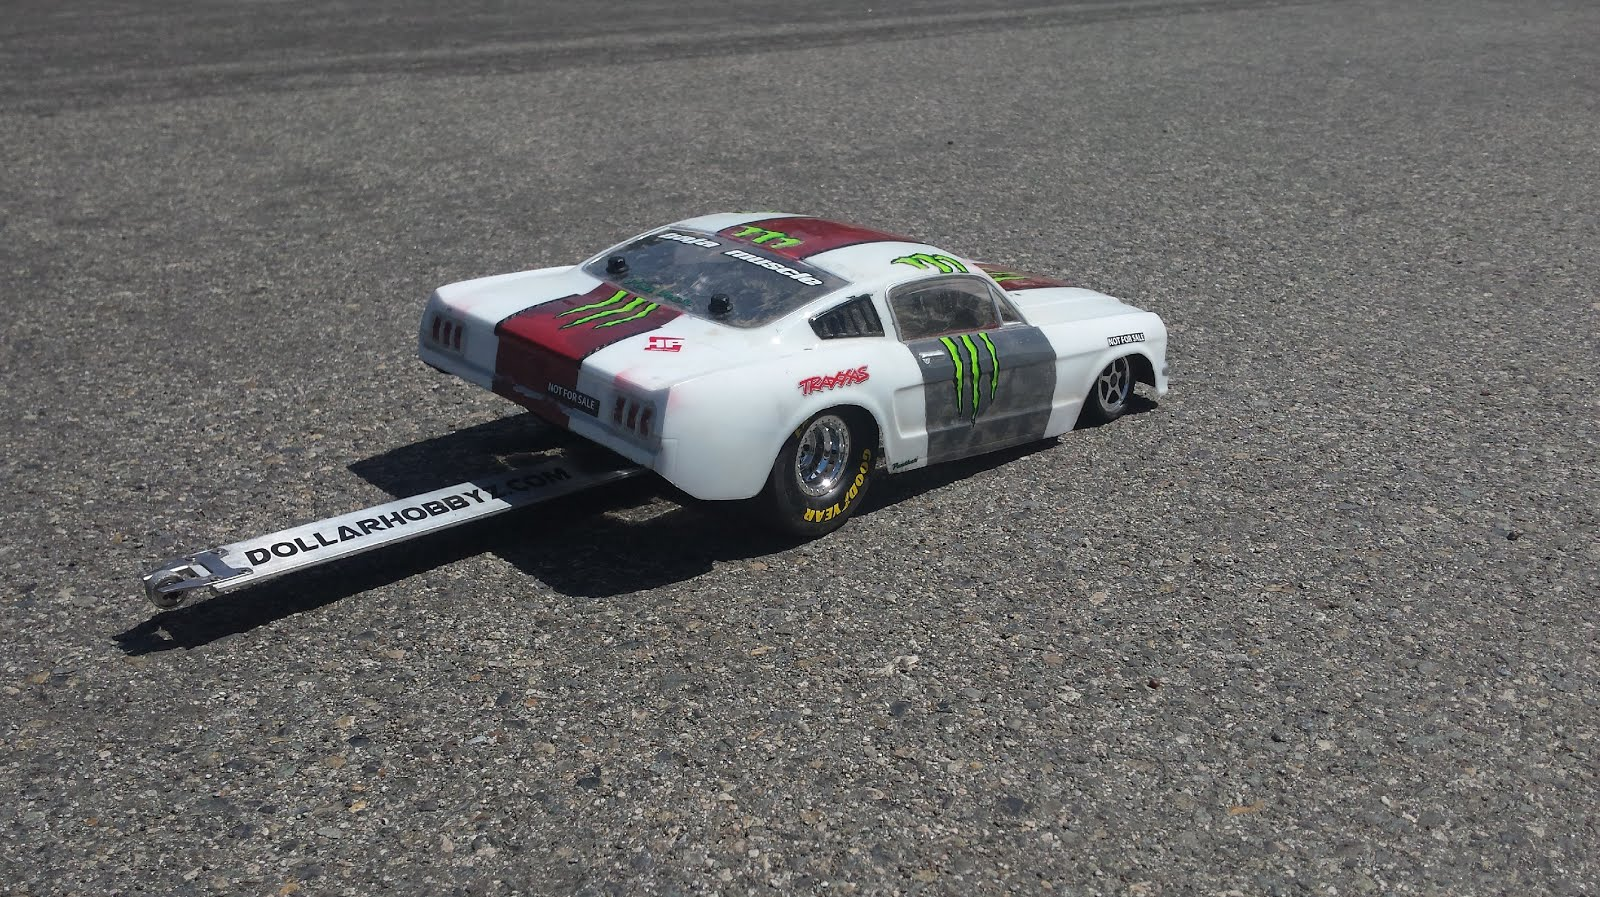 List Of Synonyms And Antonyms Of The Word Traxxas Dragster